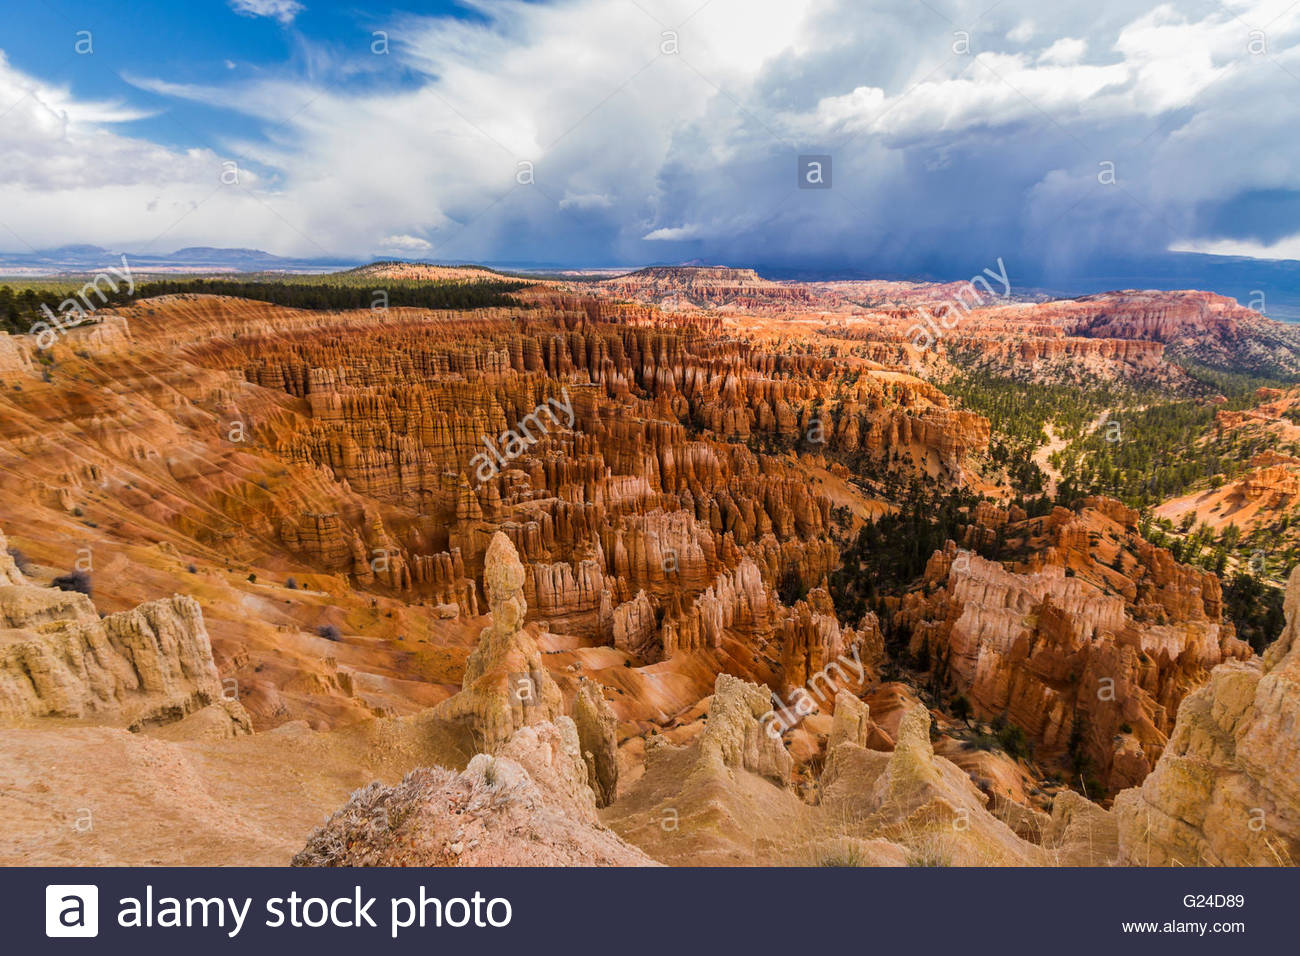 Le Parc National de Bryce Canyon cheminées Photo Stock